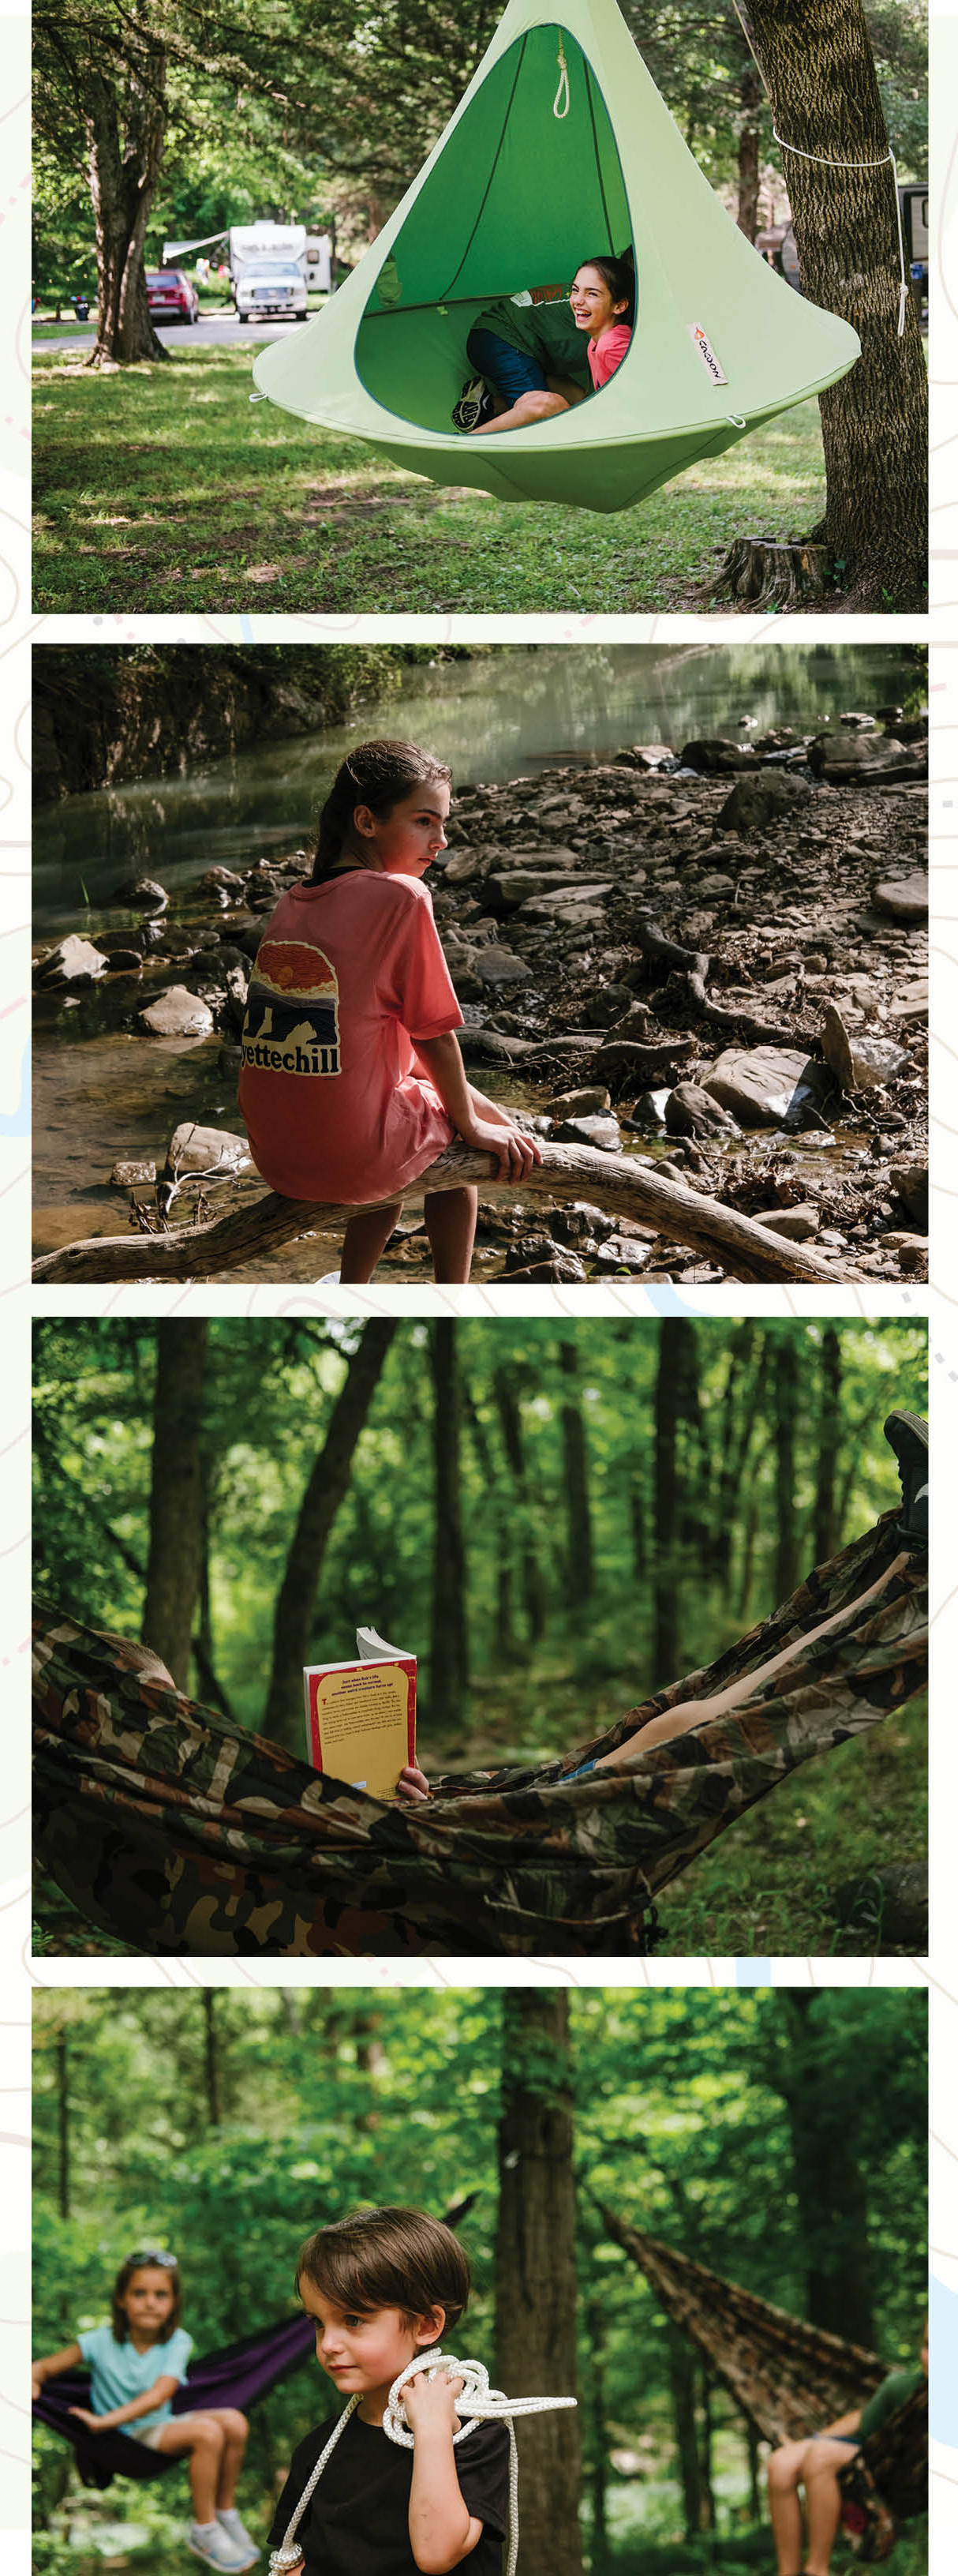 From Top: Aven laughs after vaulting into the family's hanging Cacoon. Aven relaxes next to Lee Creek after a family hike. Sophia kicks back in one of the family's two hammocks with a book. The entire family pitched in to make camp, even two-year-old Beckett.